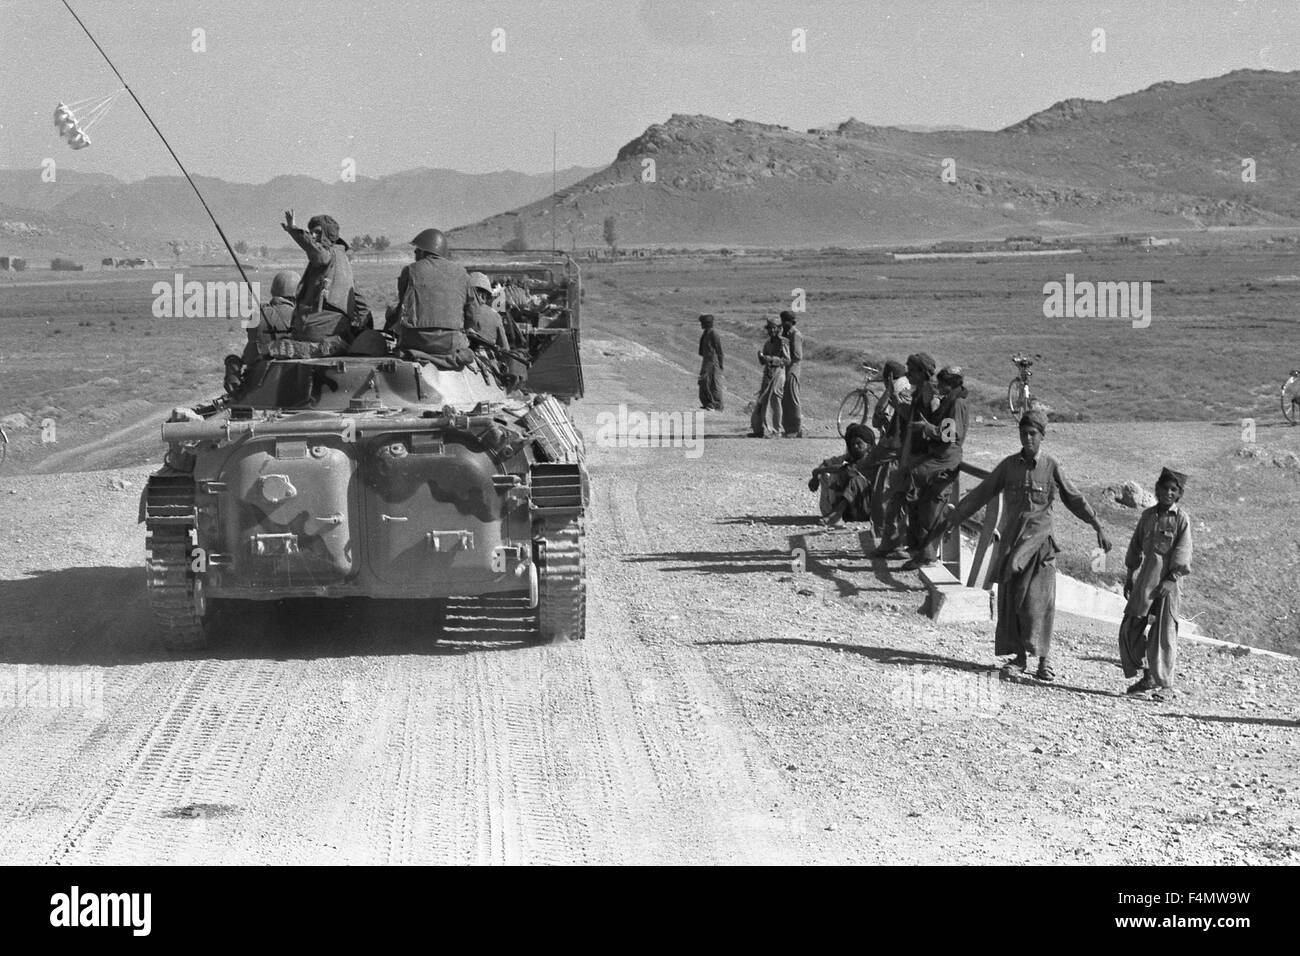 Soviet Afghanistan war - Page 6 Afghanistan-the-soviet-military-technics-on-road-to-kandahar-F4MW9W